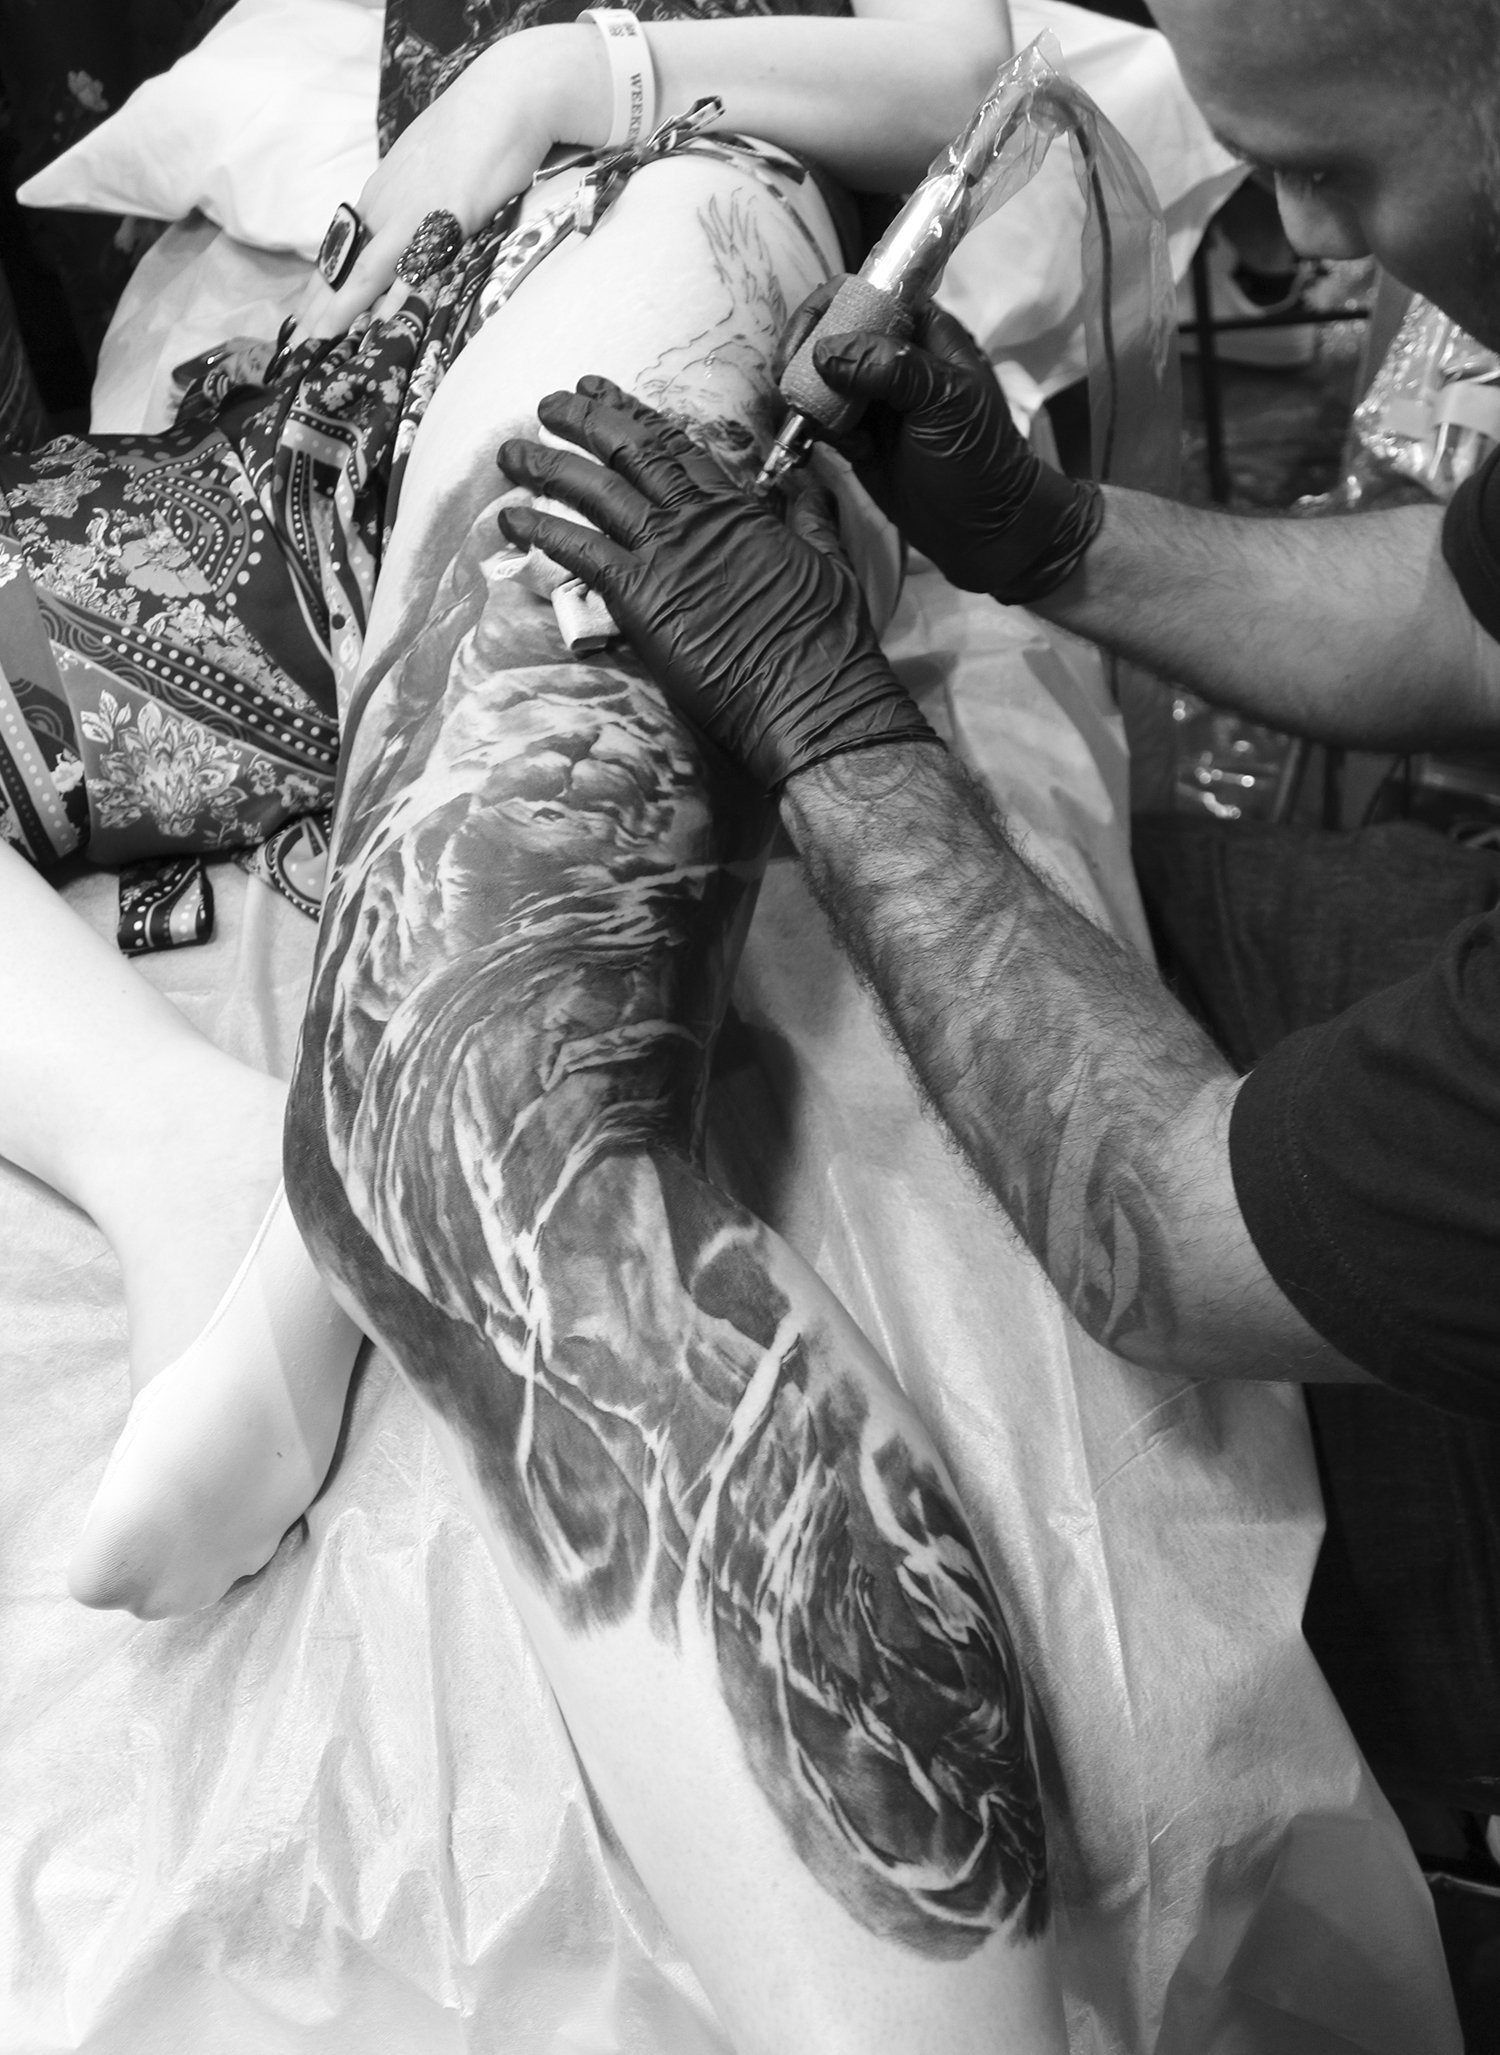 carlos torres tattooing a leg, realism tattoo, black and grey